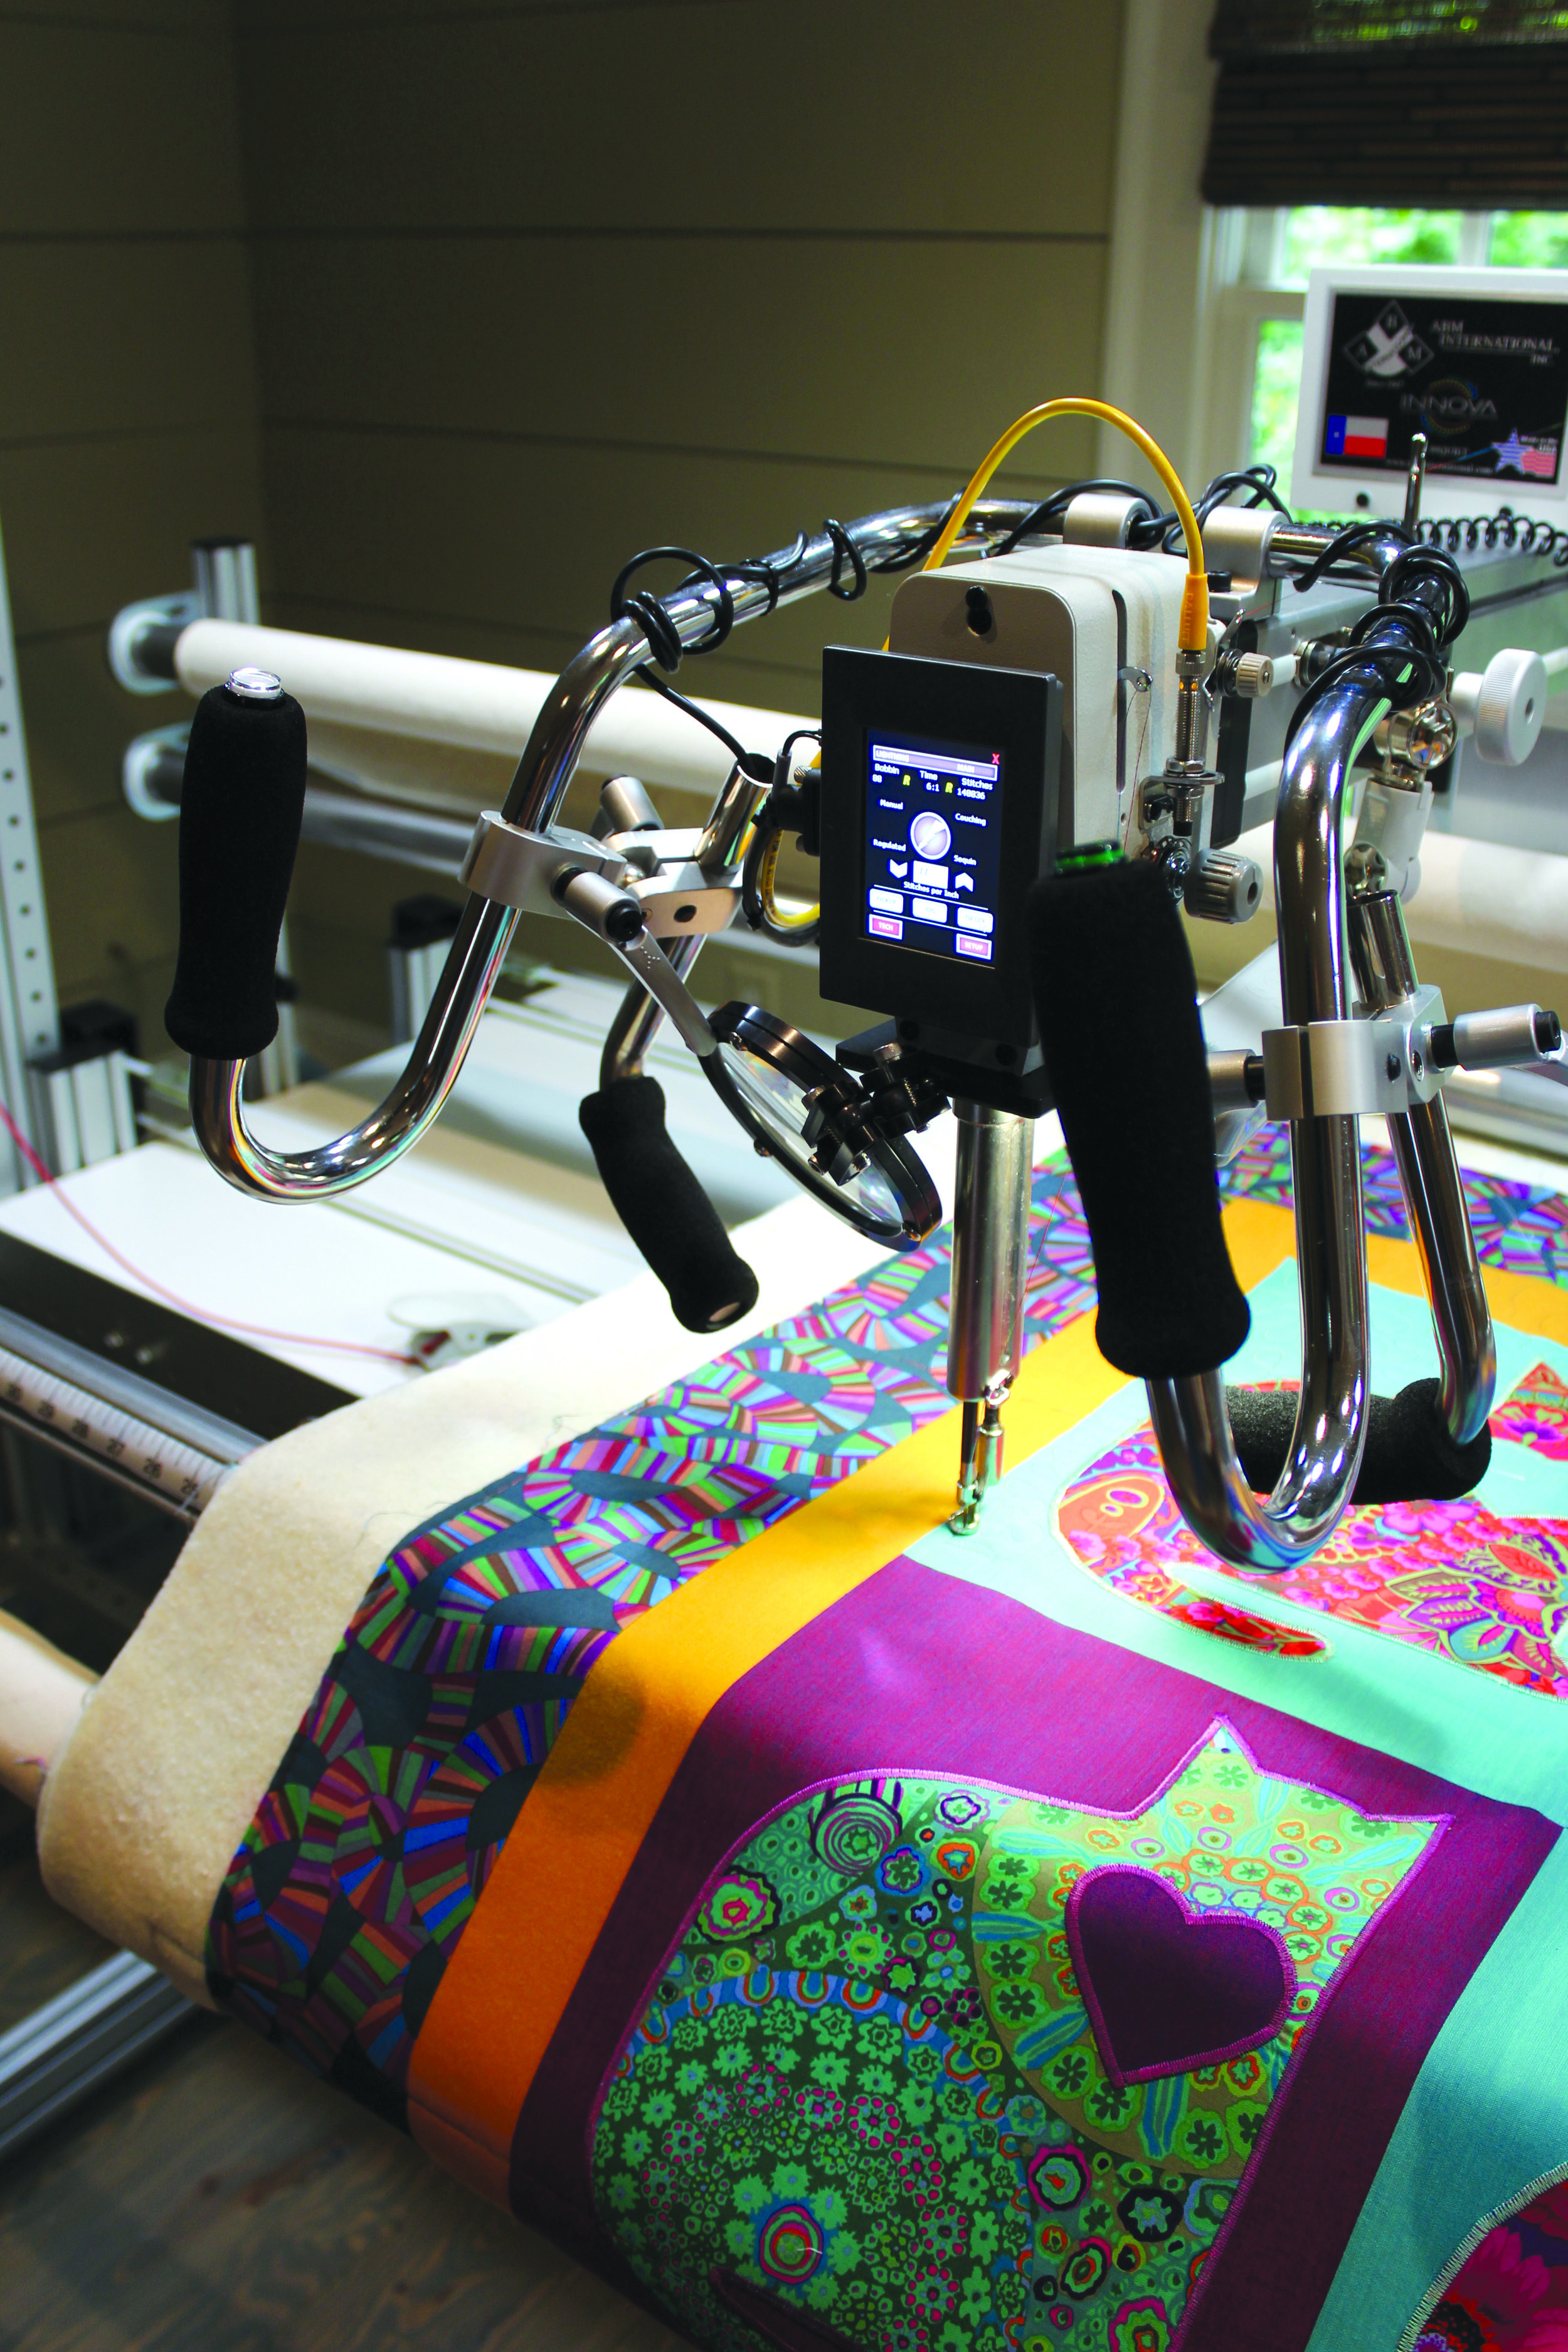 Janice uses her two Bernina domestic sewing machines and an INNOVA longer machine to create quilts.